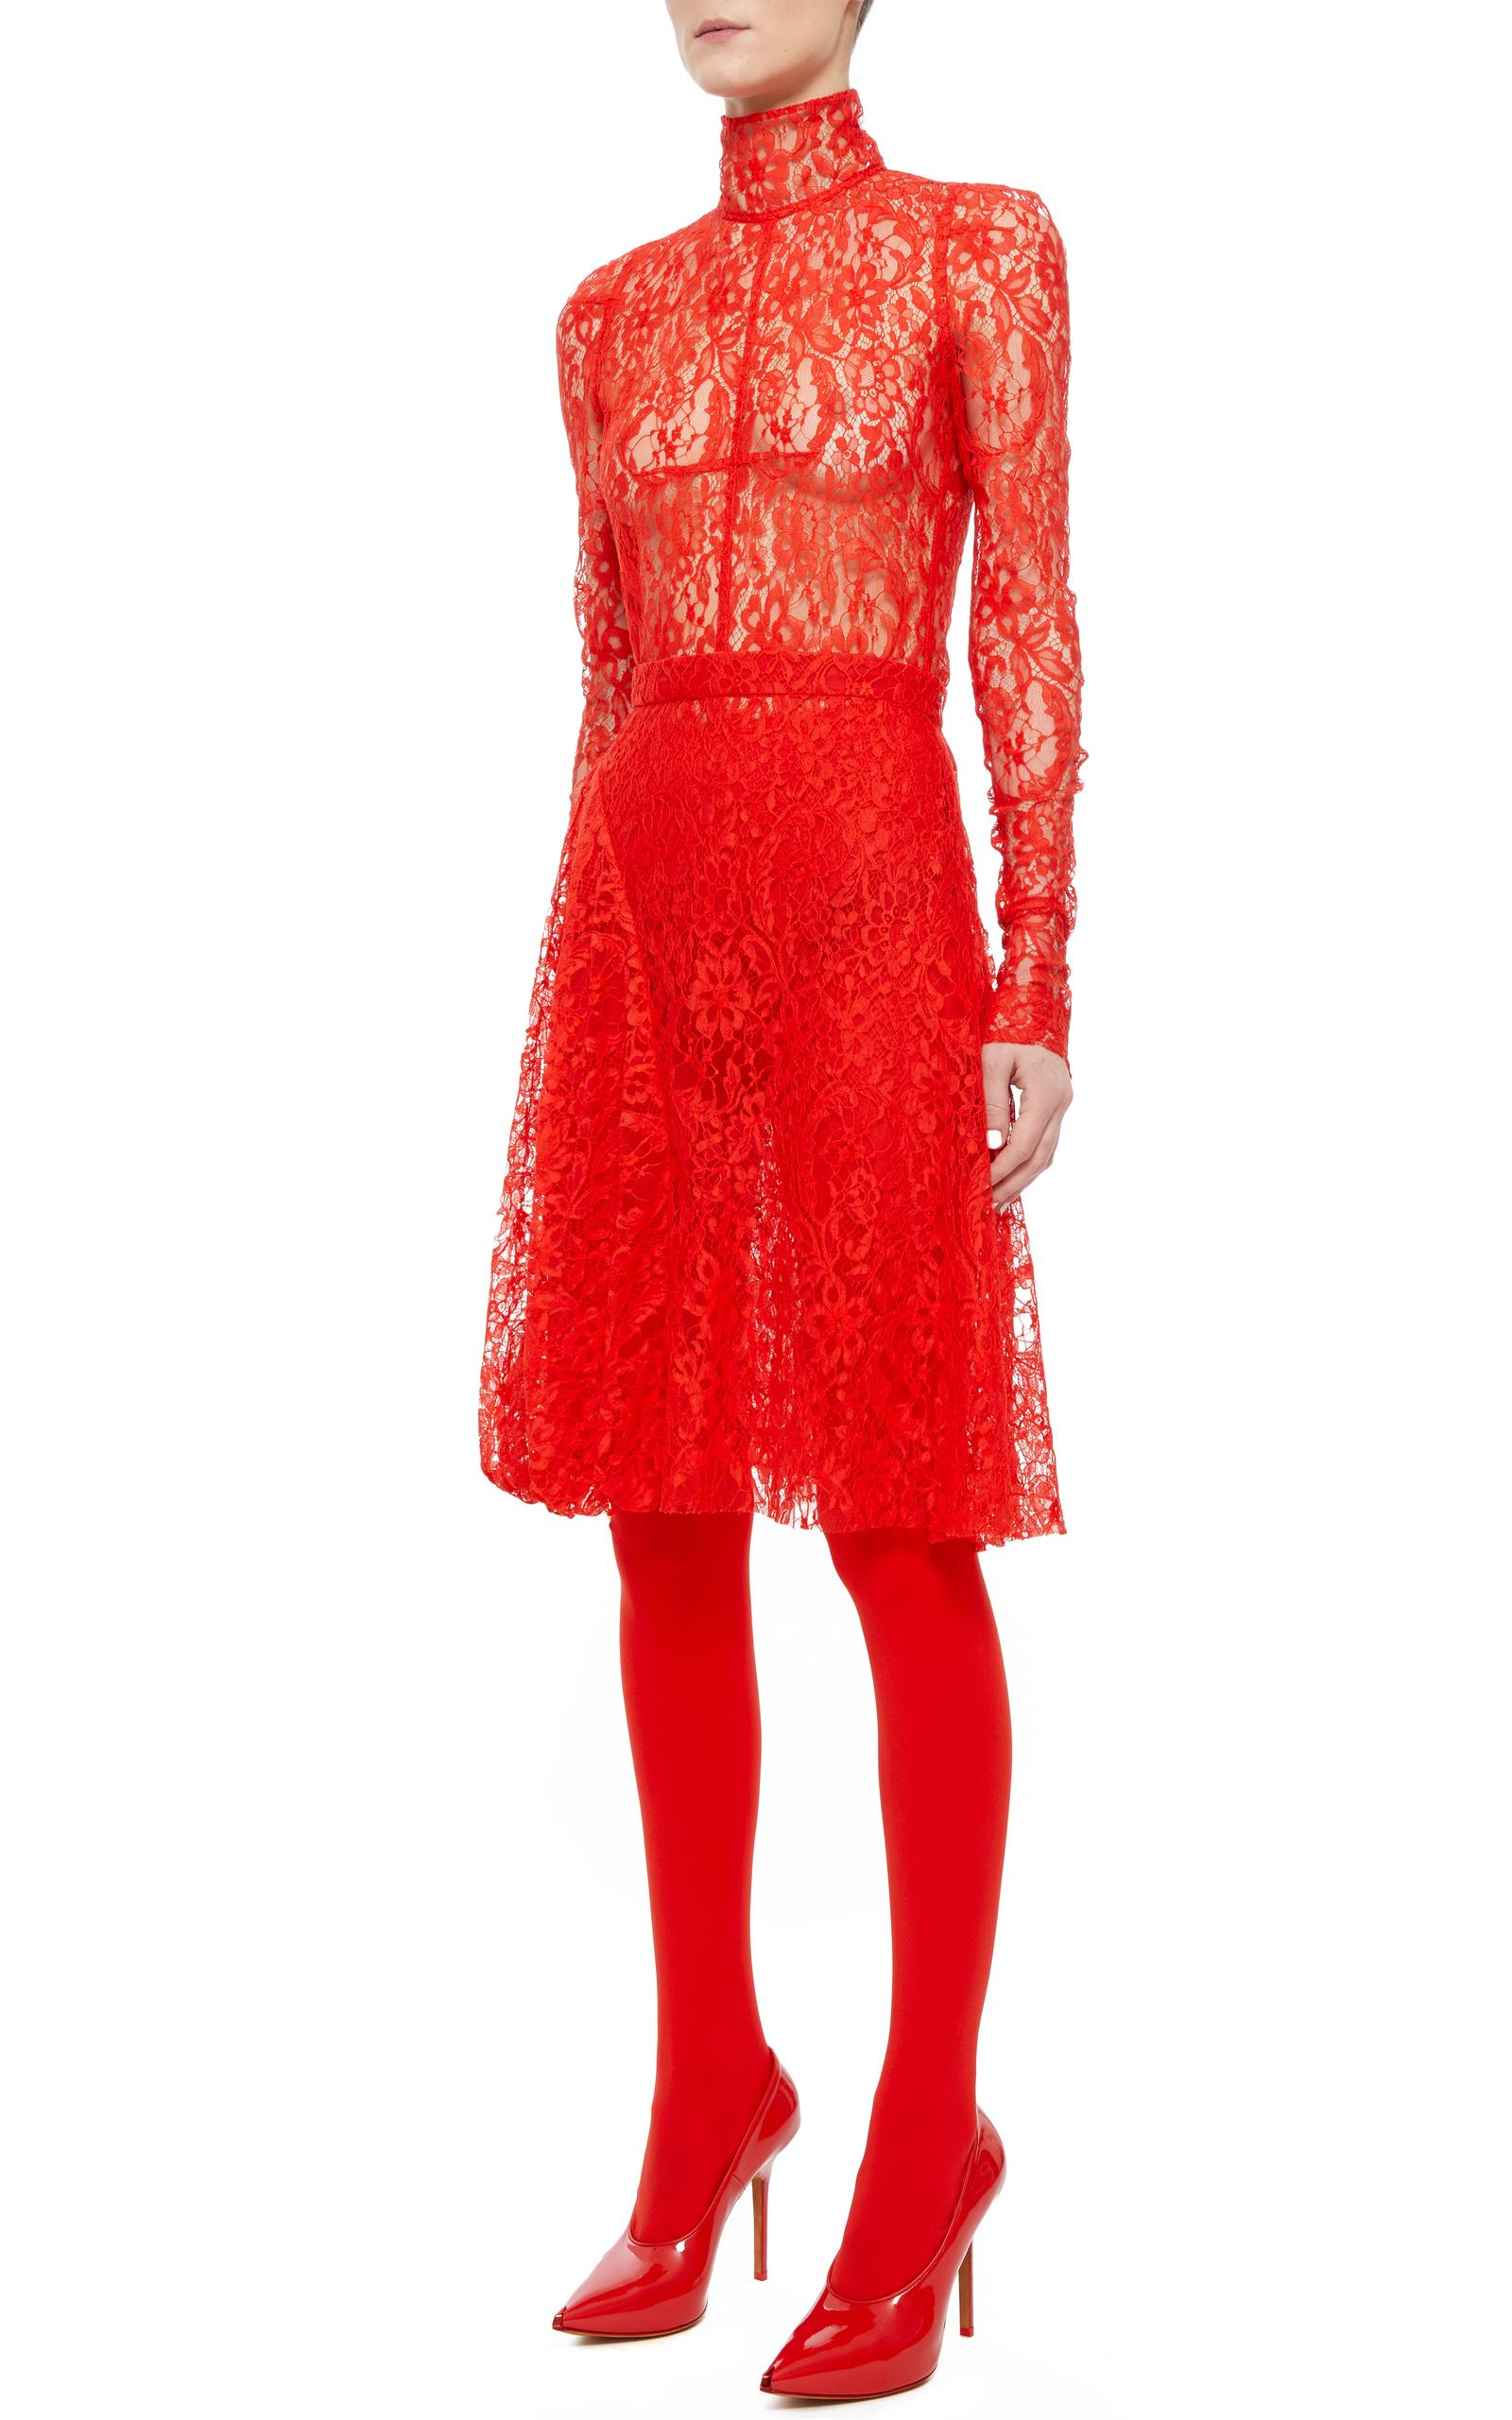 Lyst - Givenchy Lace Bodysuit in Red